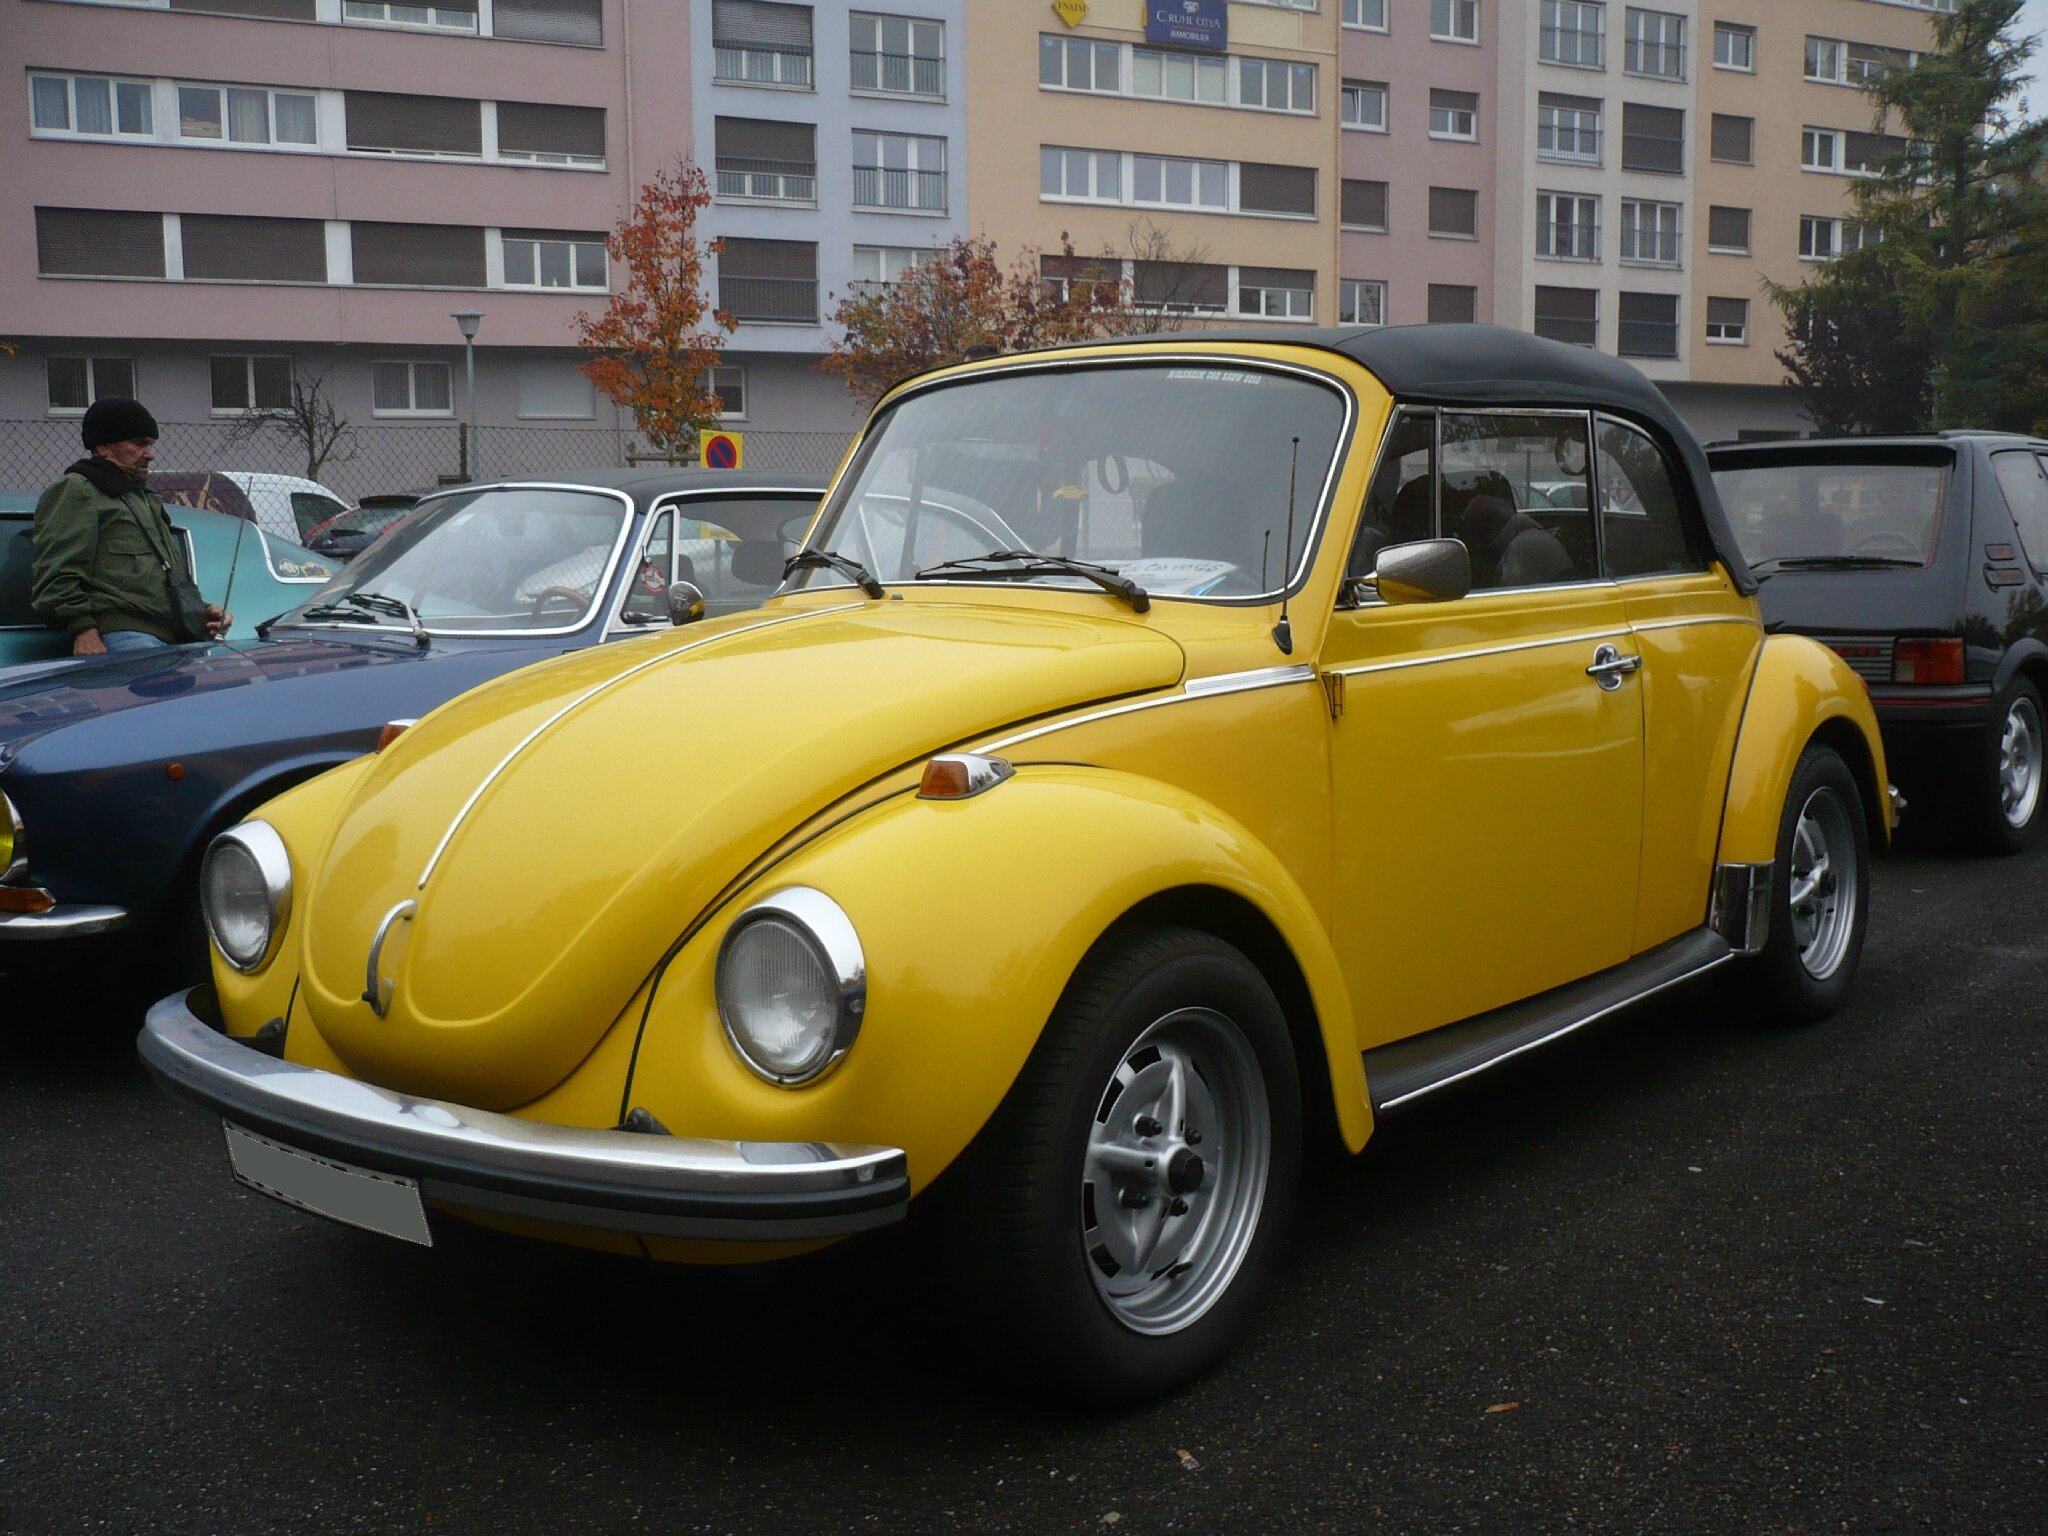 volkswagen coccinelle 1303 ls cabriolet 1974 vroom vroom. Black Bedroom Furniture Sets. Home Design Ideas